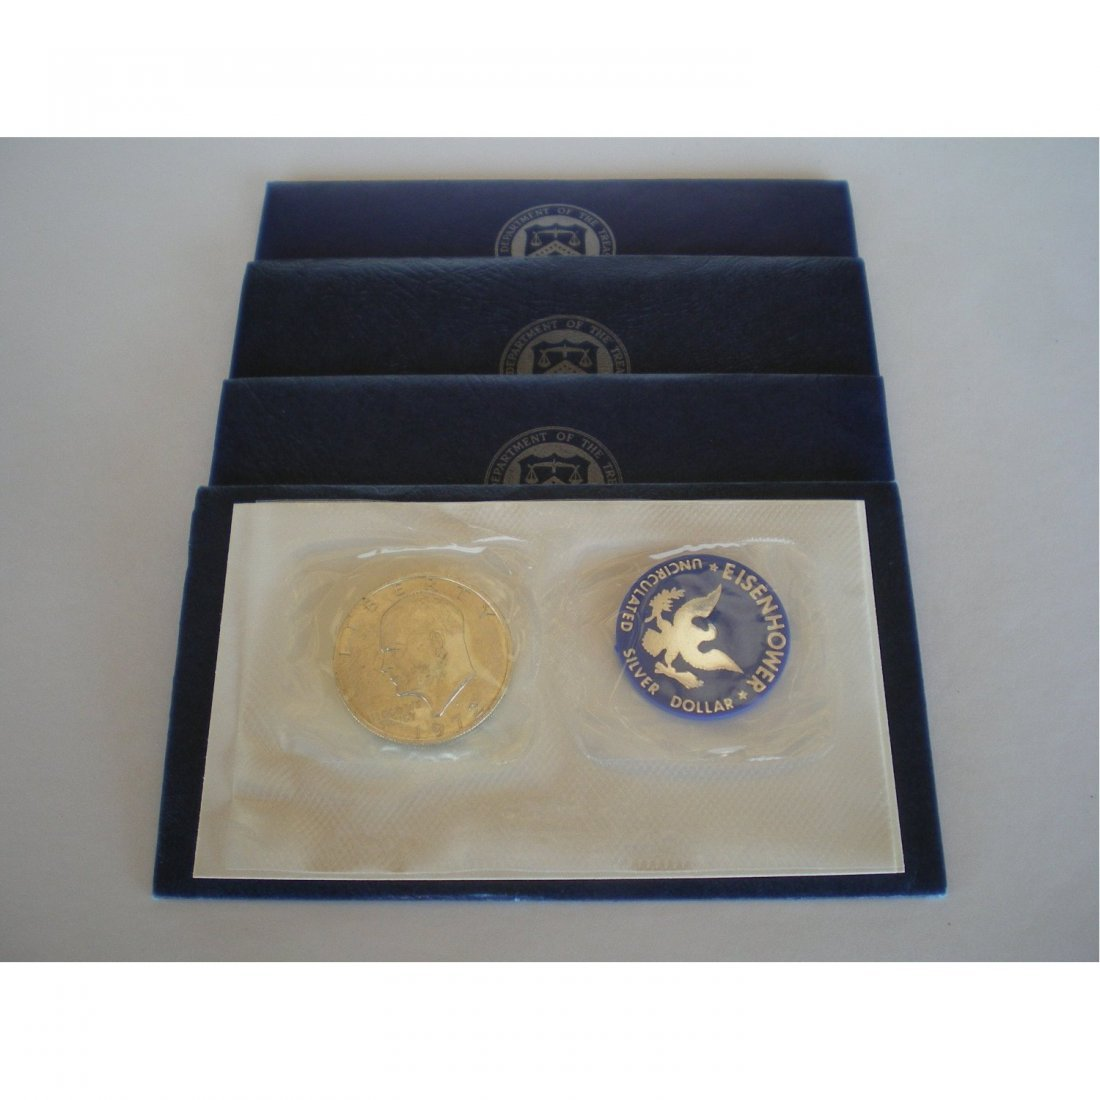 5A: Eisenhower Uncirculated Silver Dollar - Blue Pack